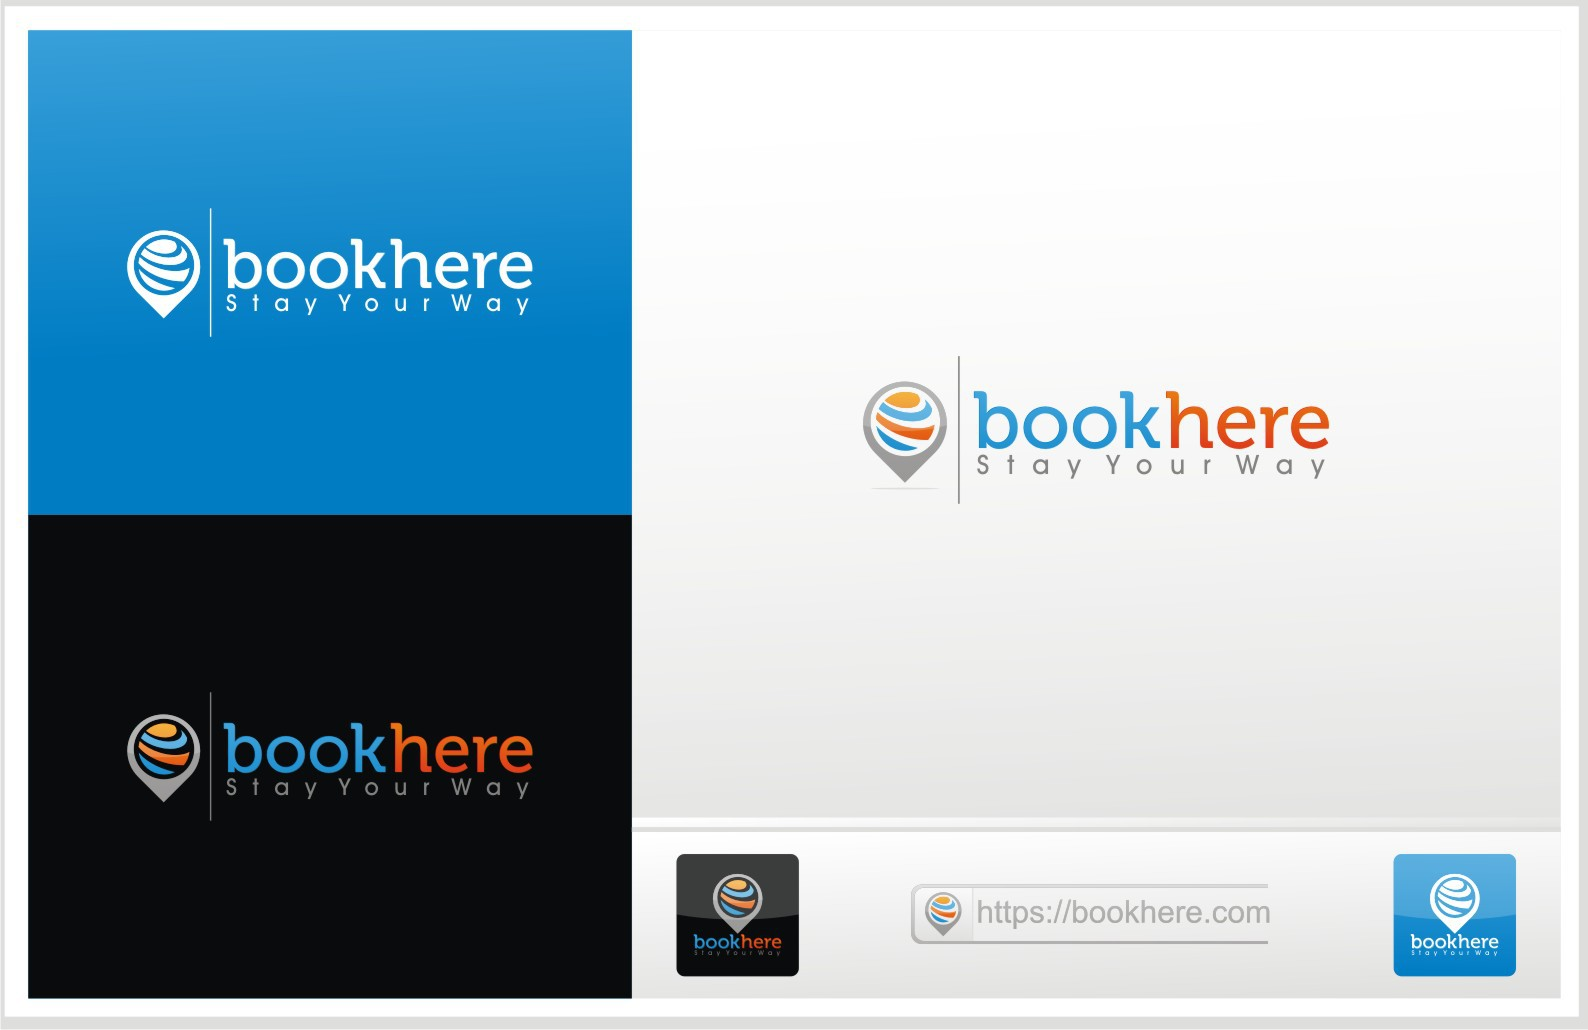 Help BookHere with a new logo